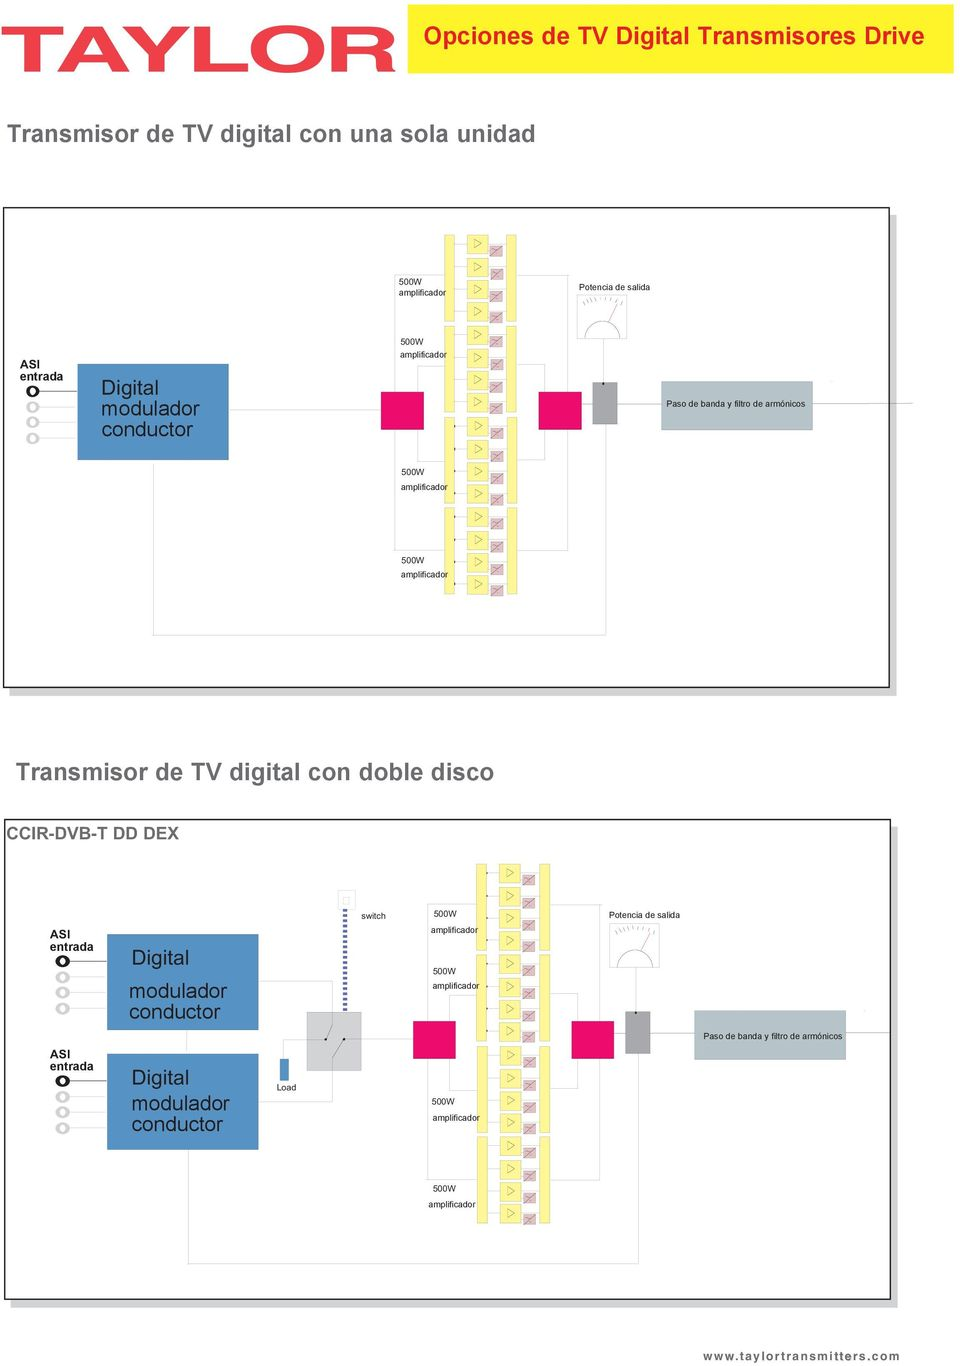 Transmisor de TV digital con doble disco CCIR-DVB-T DD